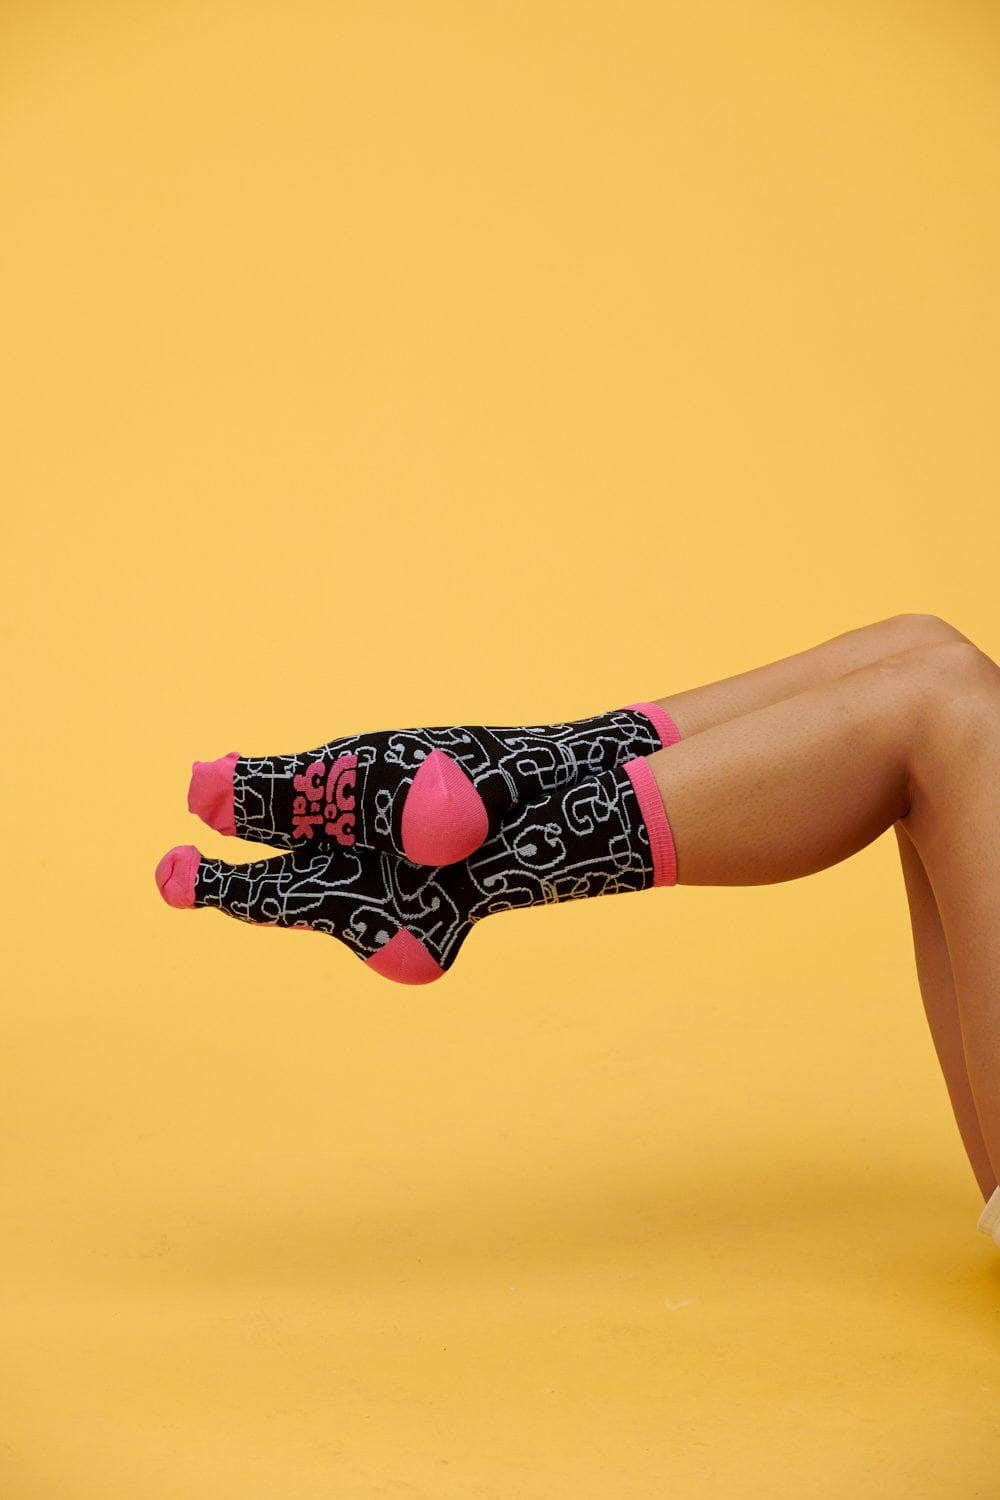 Lucy & Yak Socks Squiggle Calf Socks In Black & White With Pink Edge